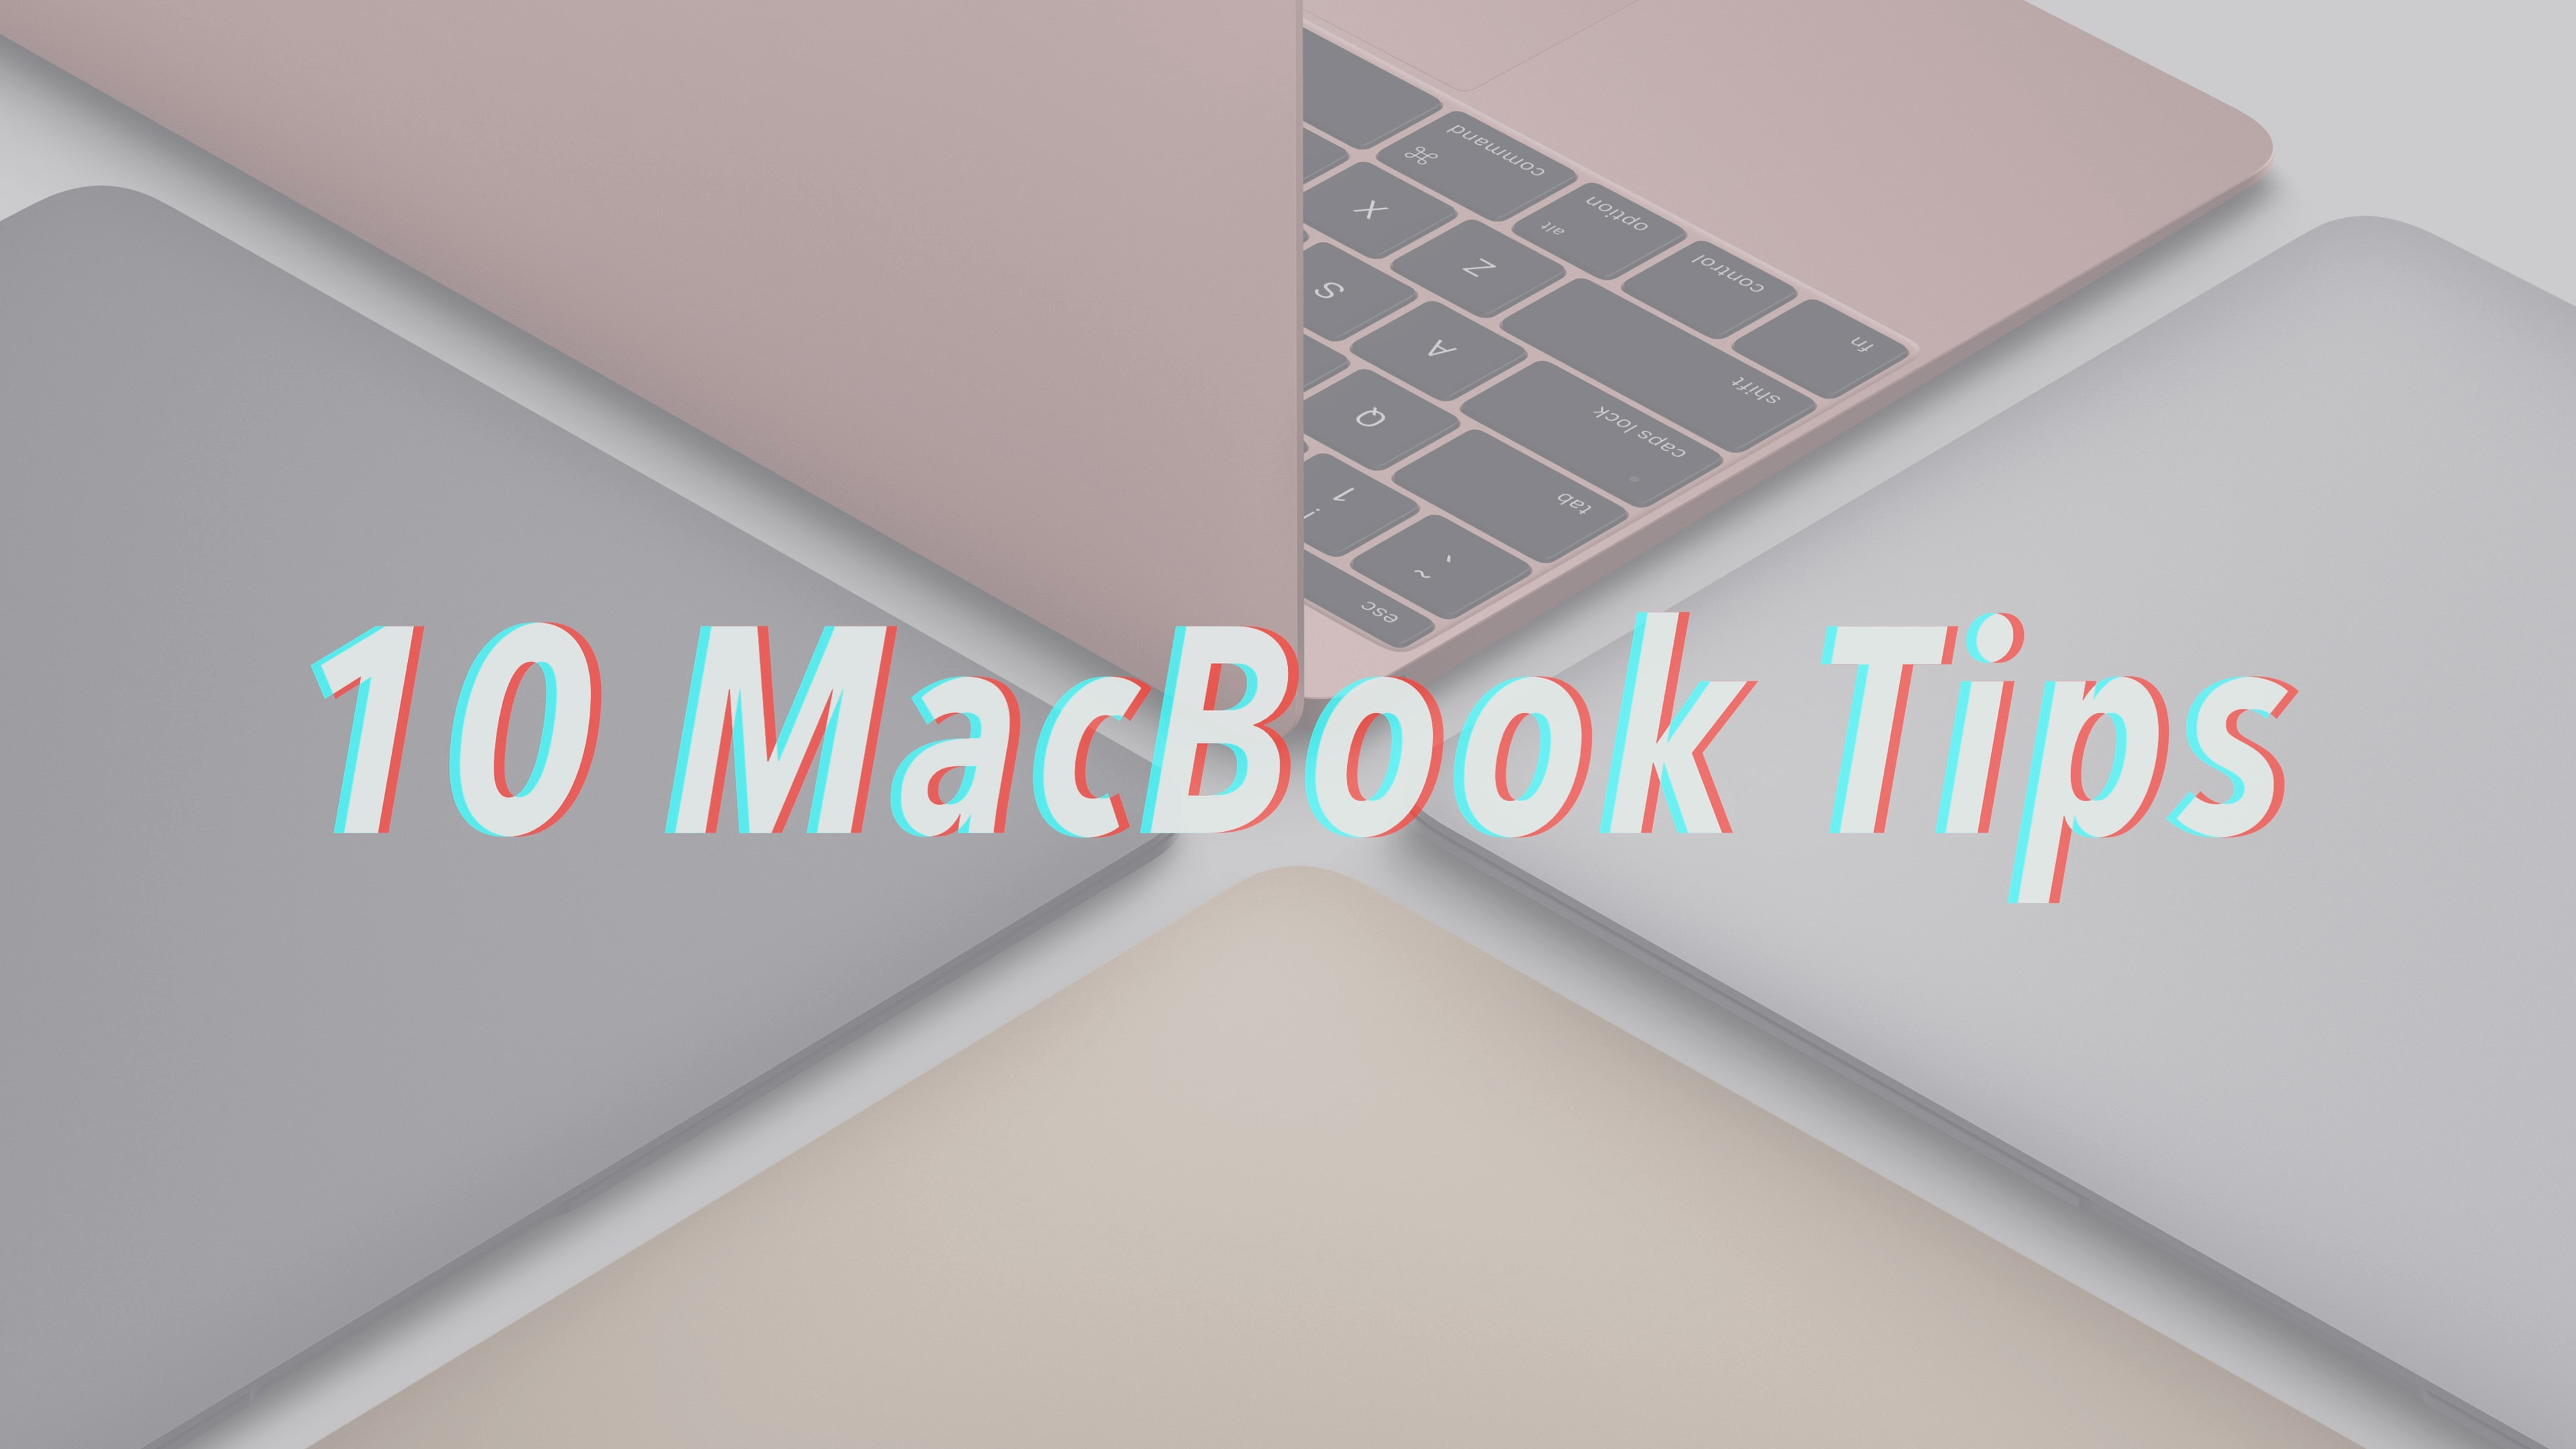 10 MacBook Tips